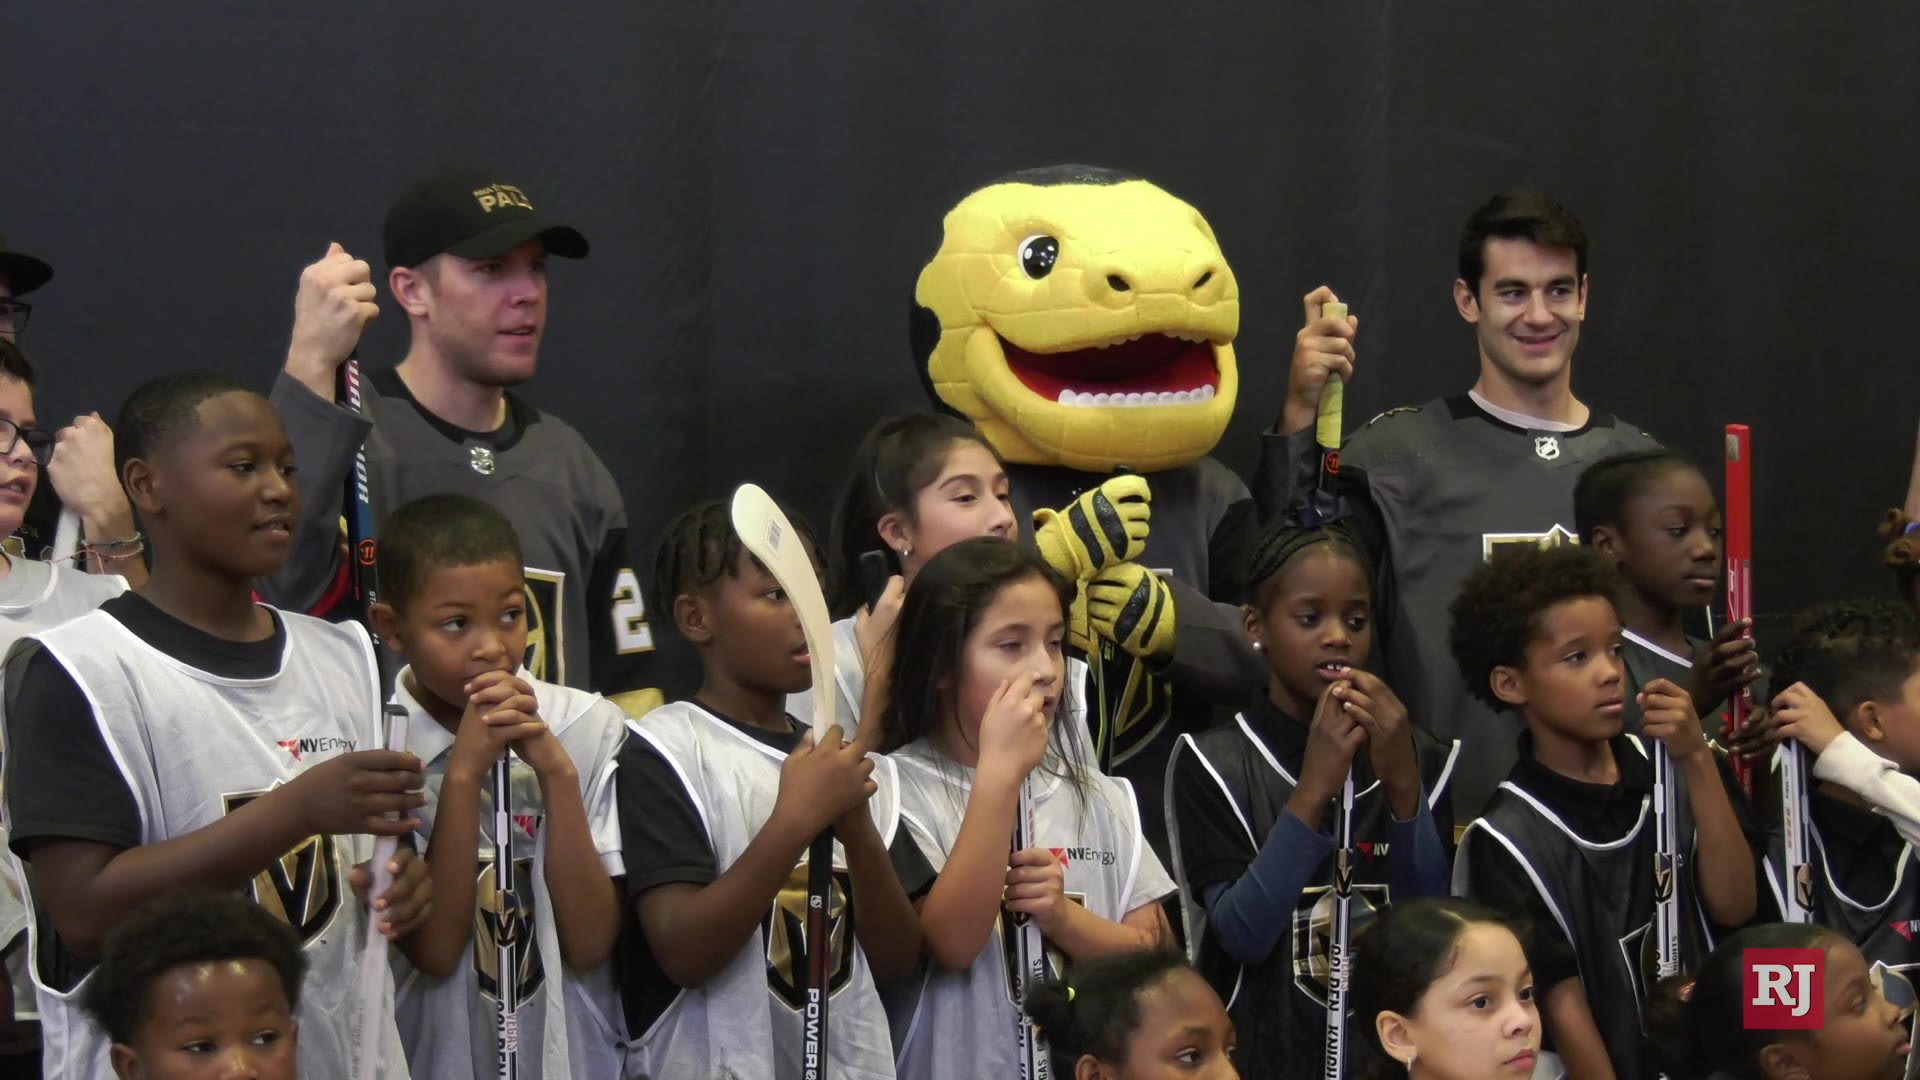 Golden Knights Max Pacioretty, Paul Stastny hold street hockey clinic - Las Vegas Review-Journal